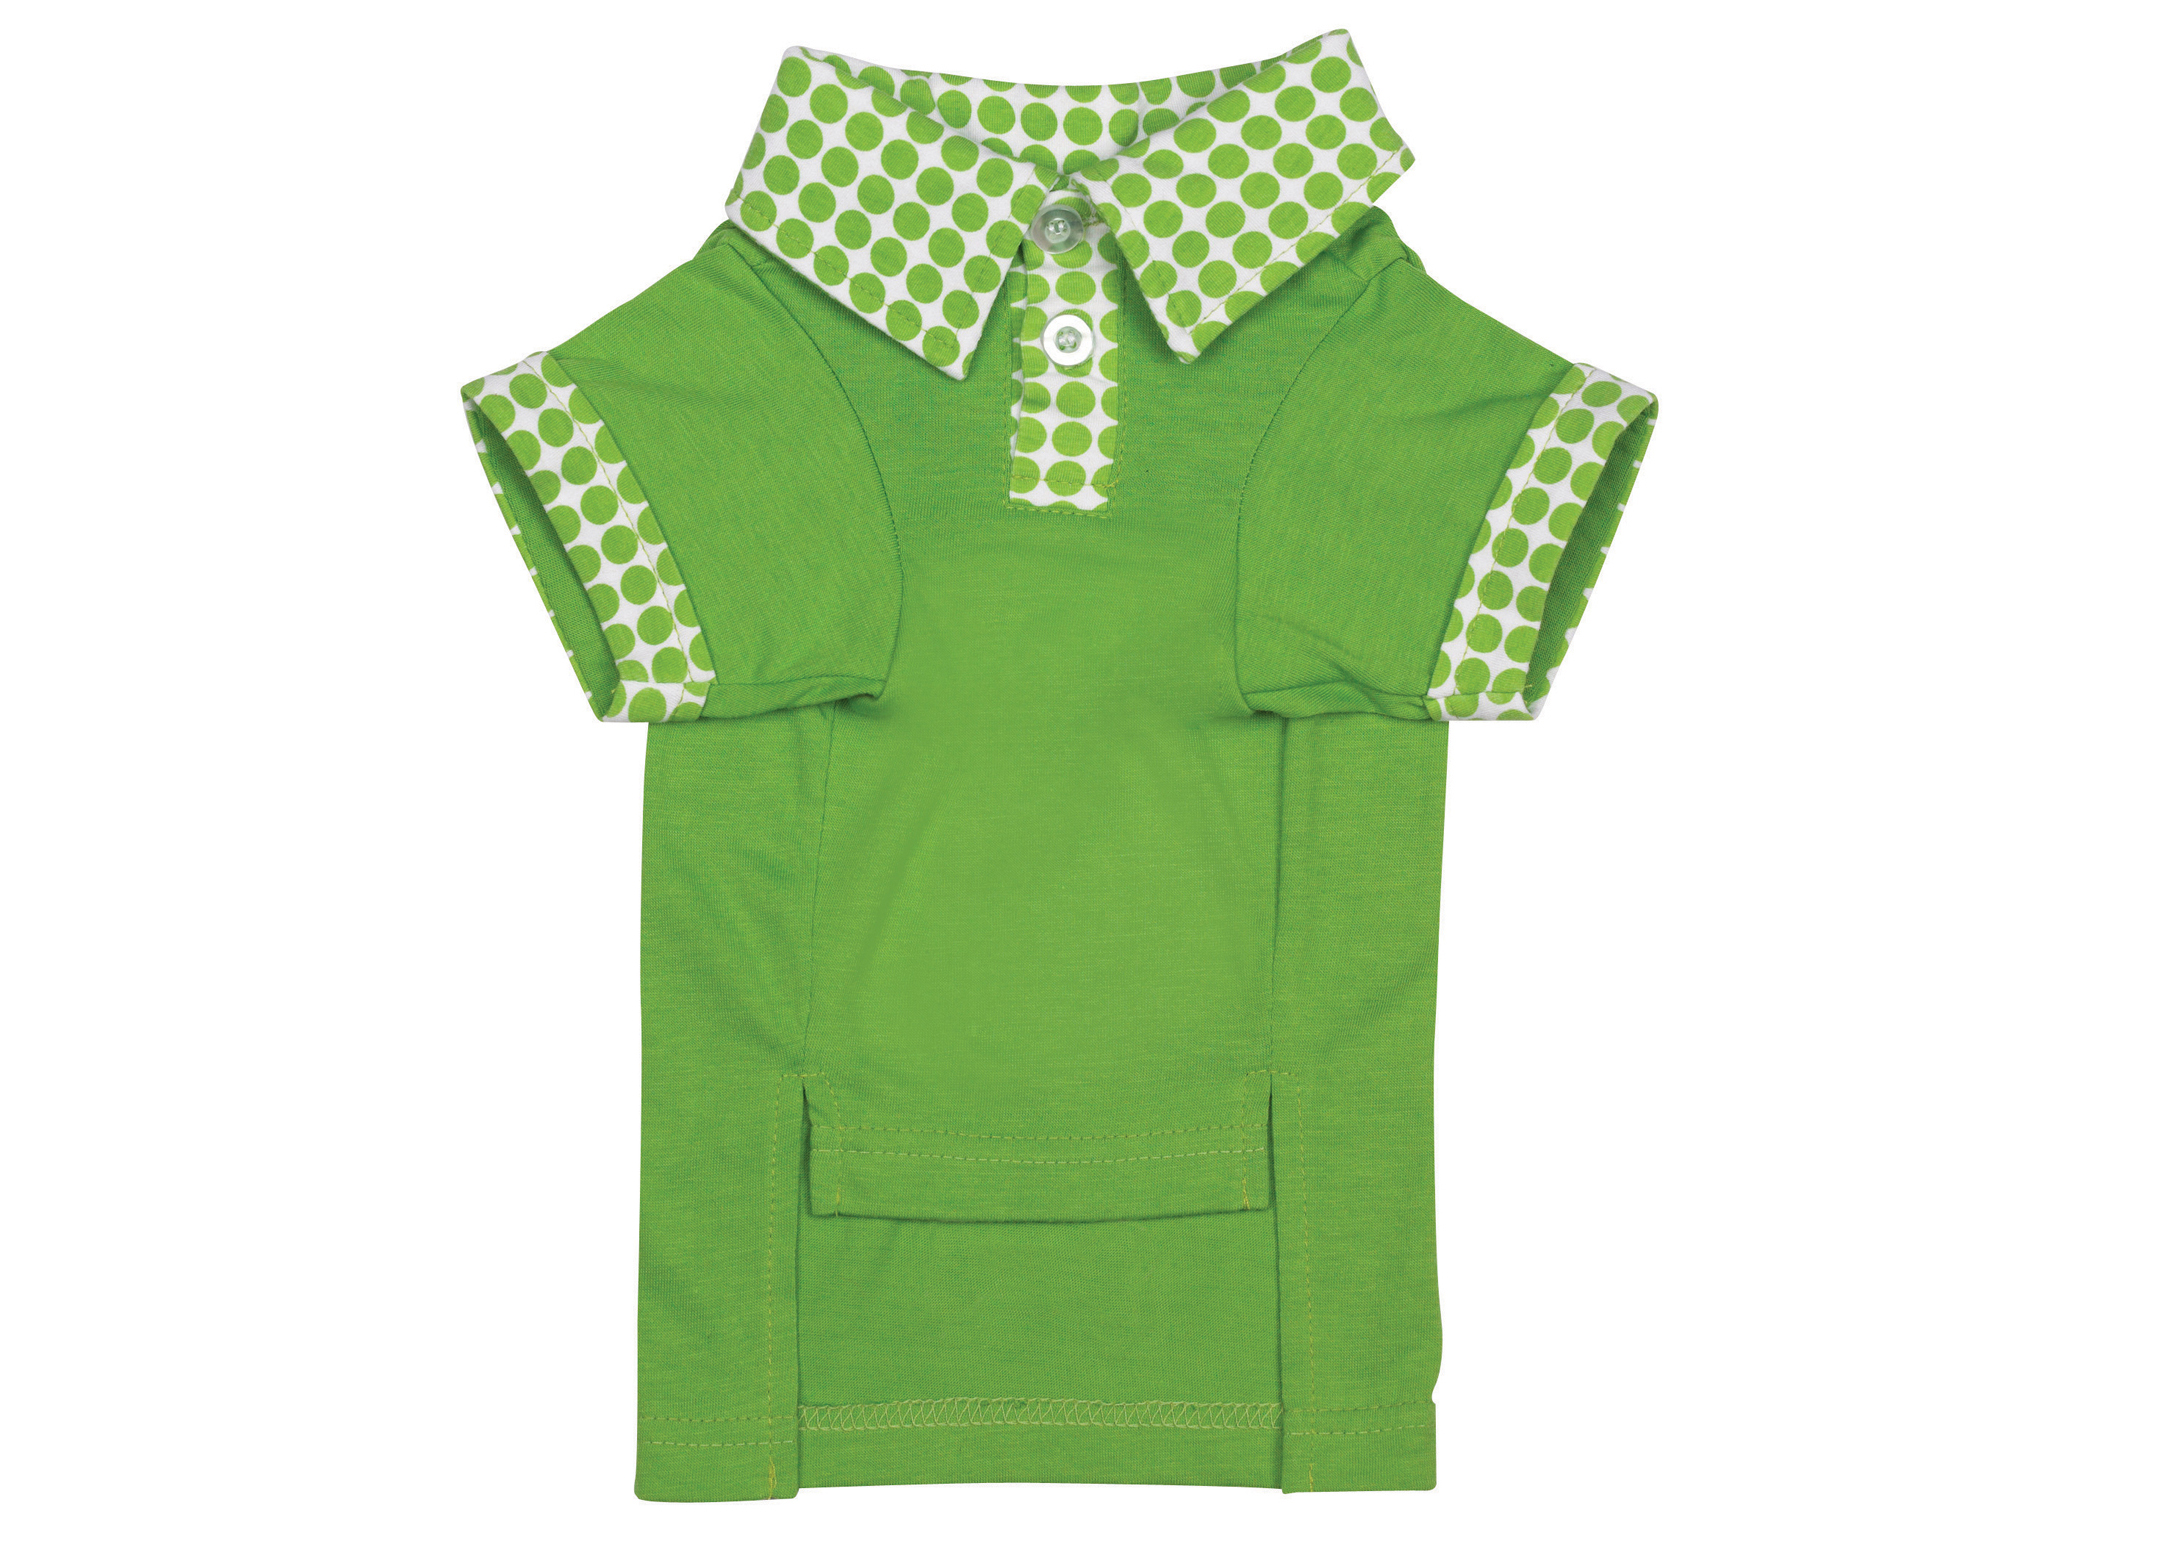 Zack & Zoe Zack&Zoey Button Candy Polo Parrot Green Attire For Dogs